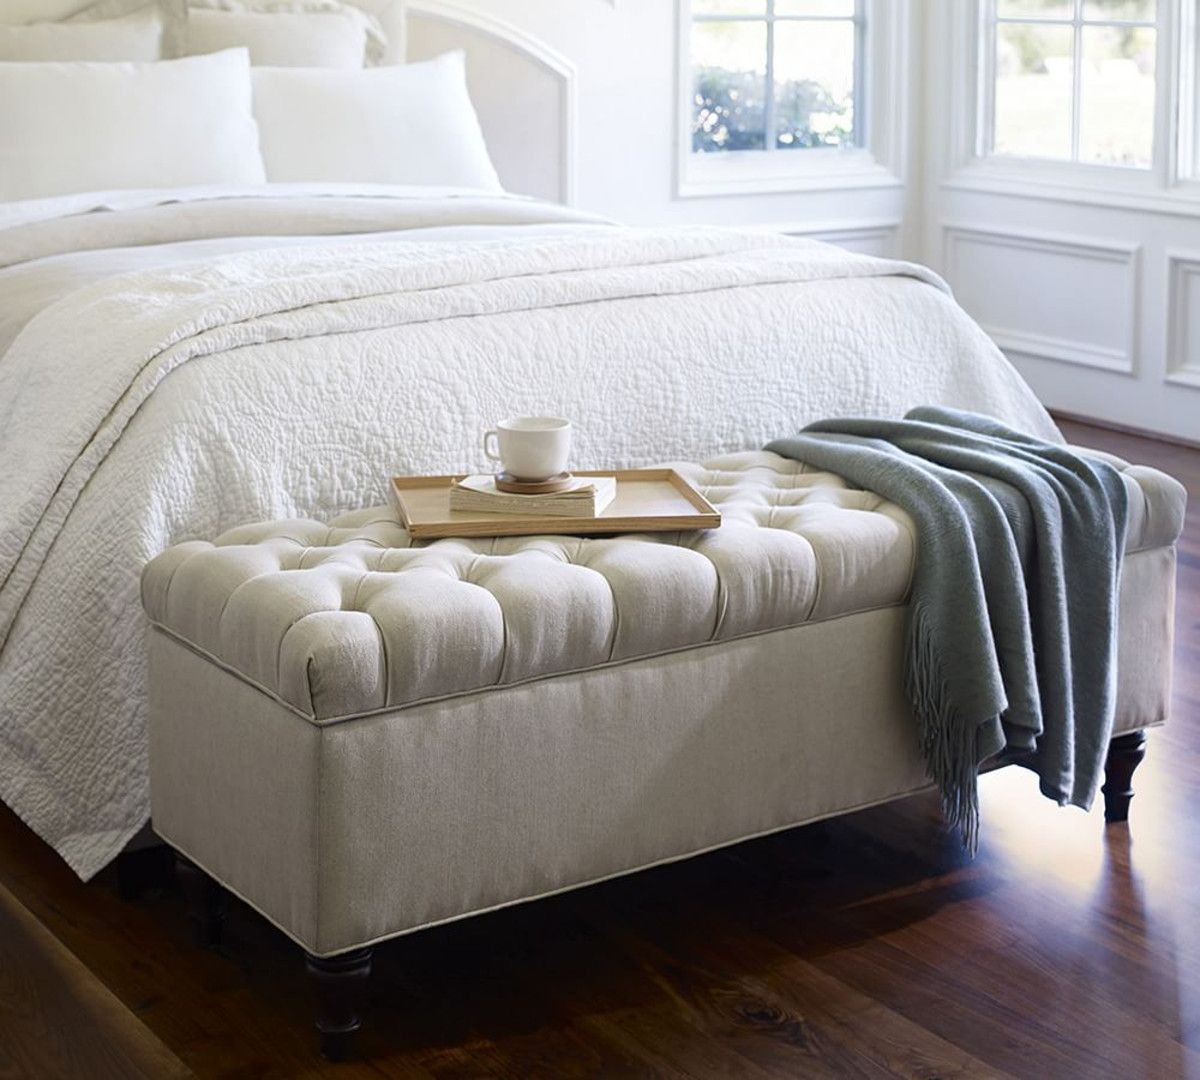 Lorraine Tufted Storage Bench From Pottery Barn   $1384